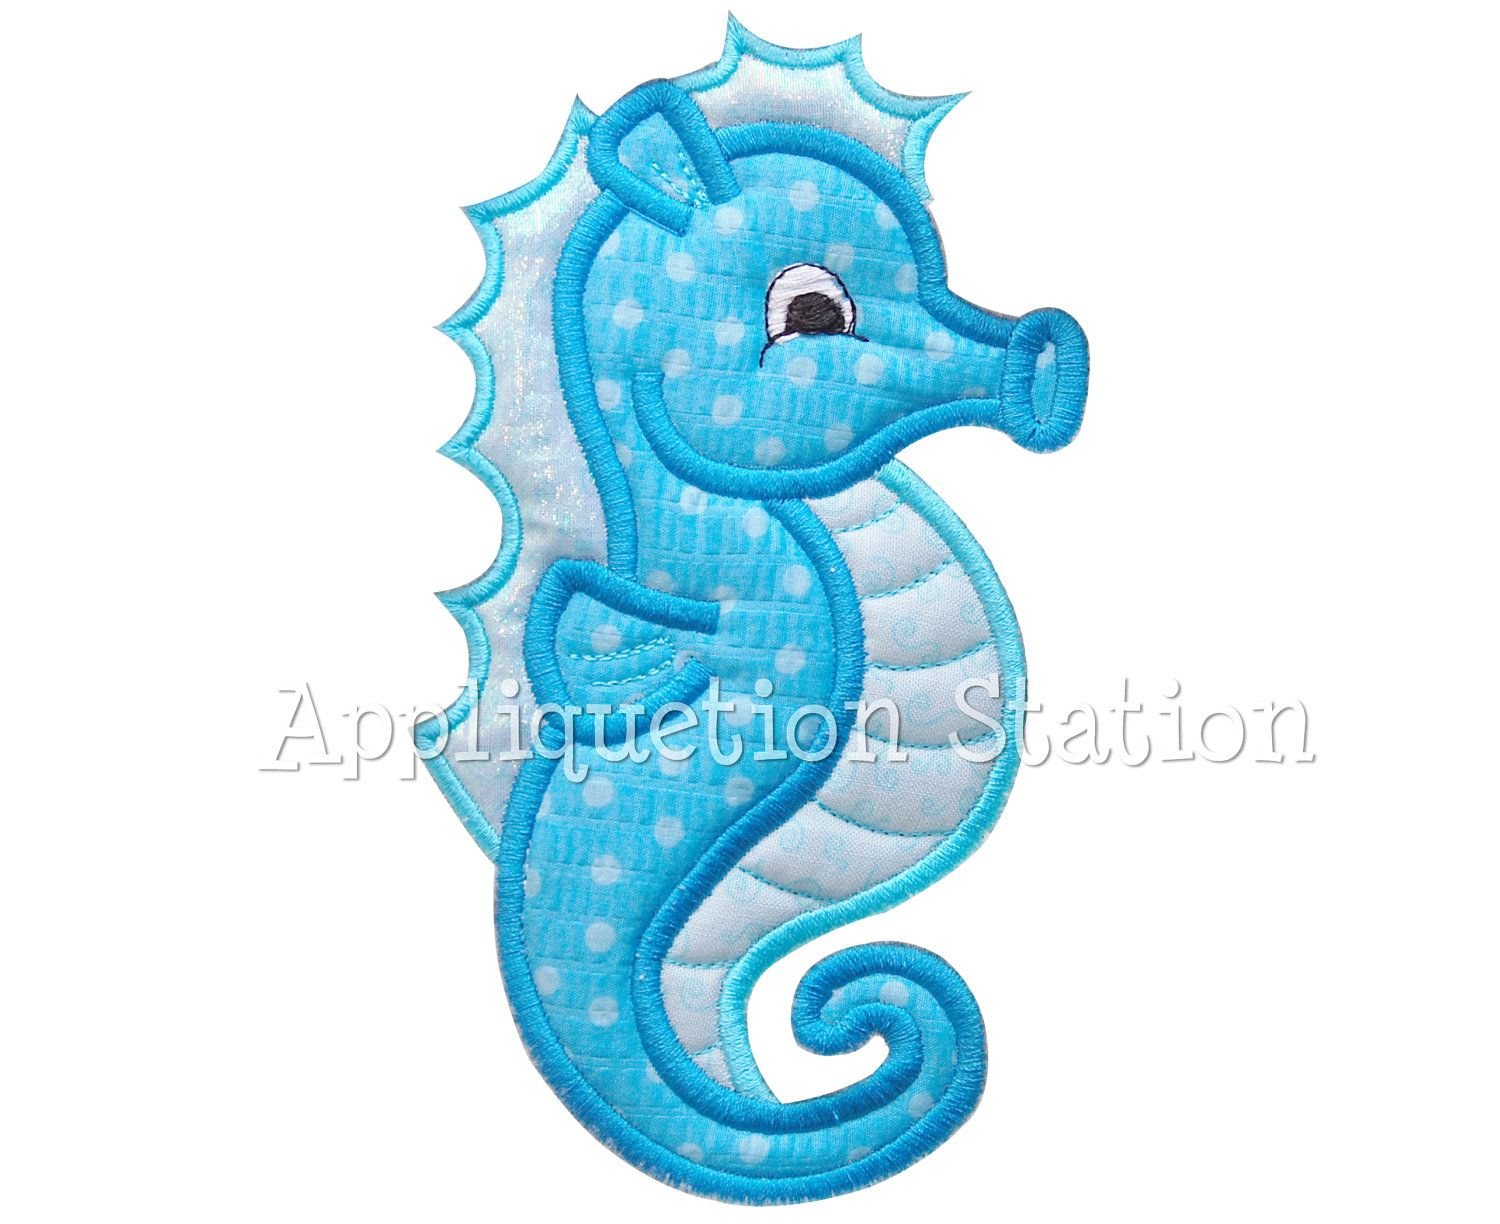 Seahorse applique machine embroidery design pattern